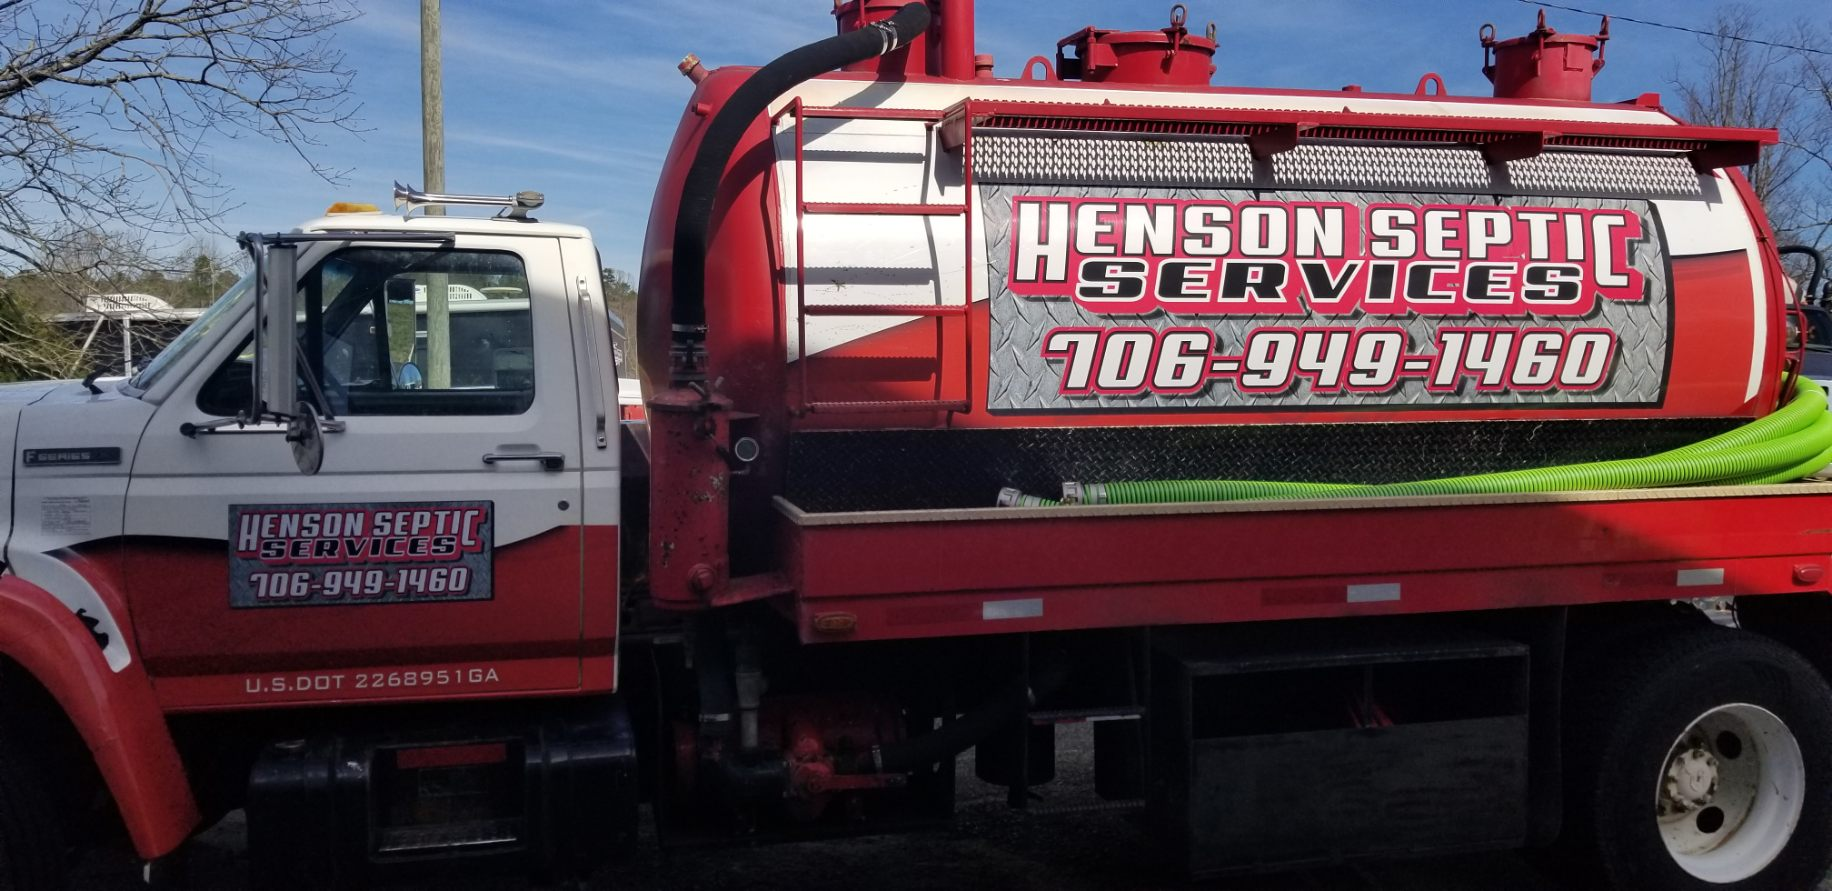 Henson Septic Services image 3